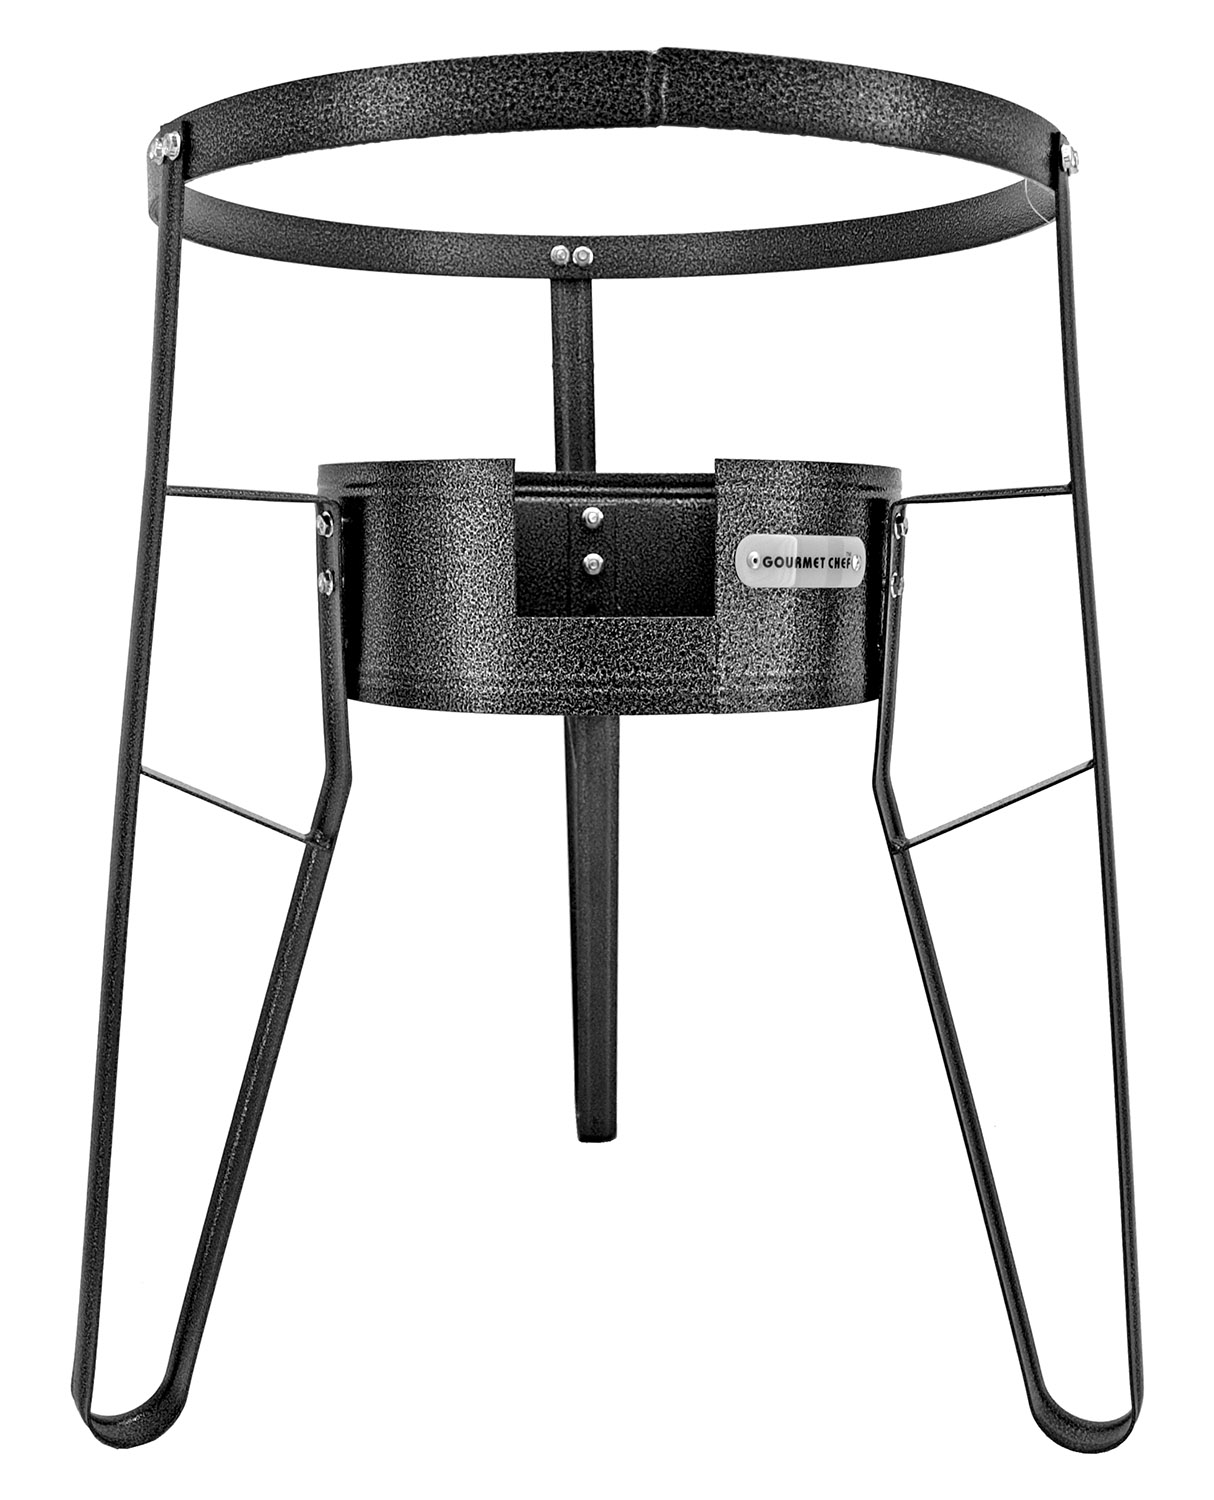 Gourmet Chef Burner Stand